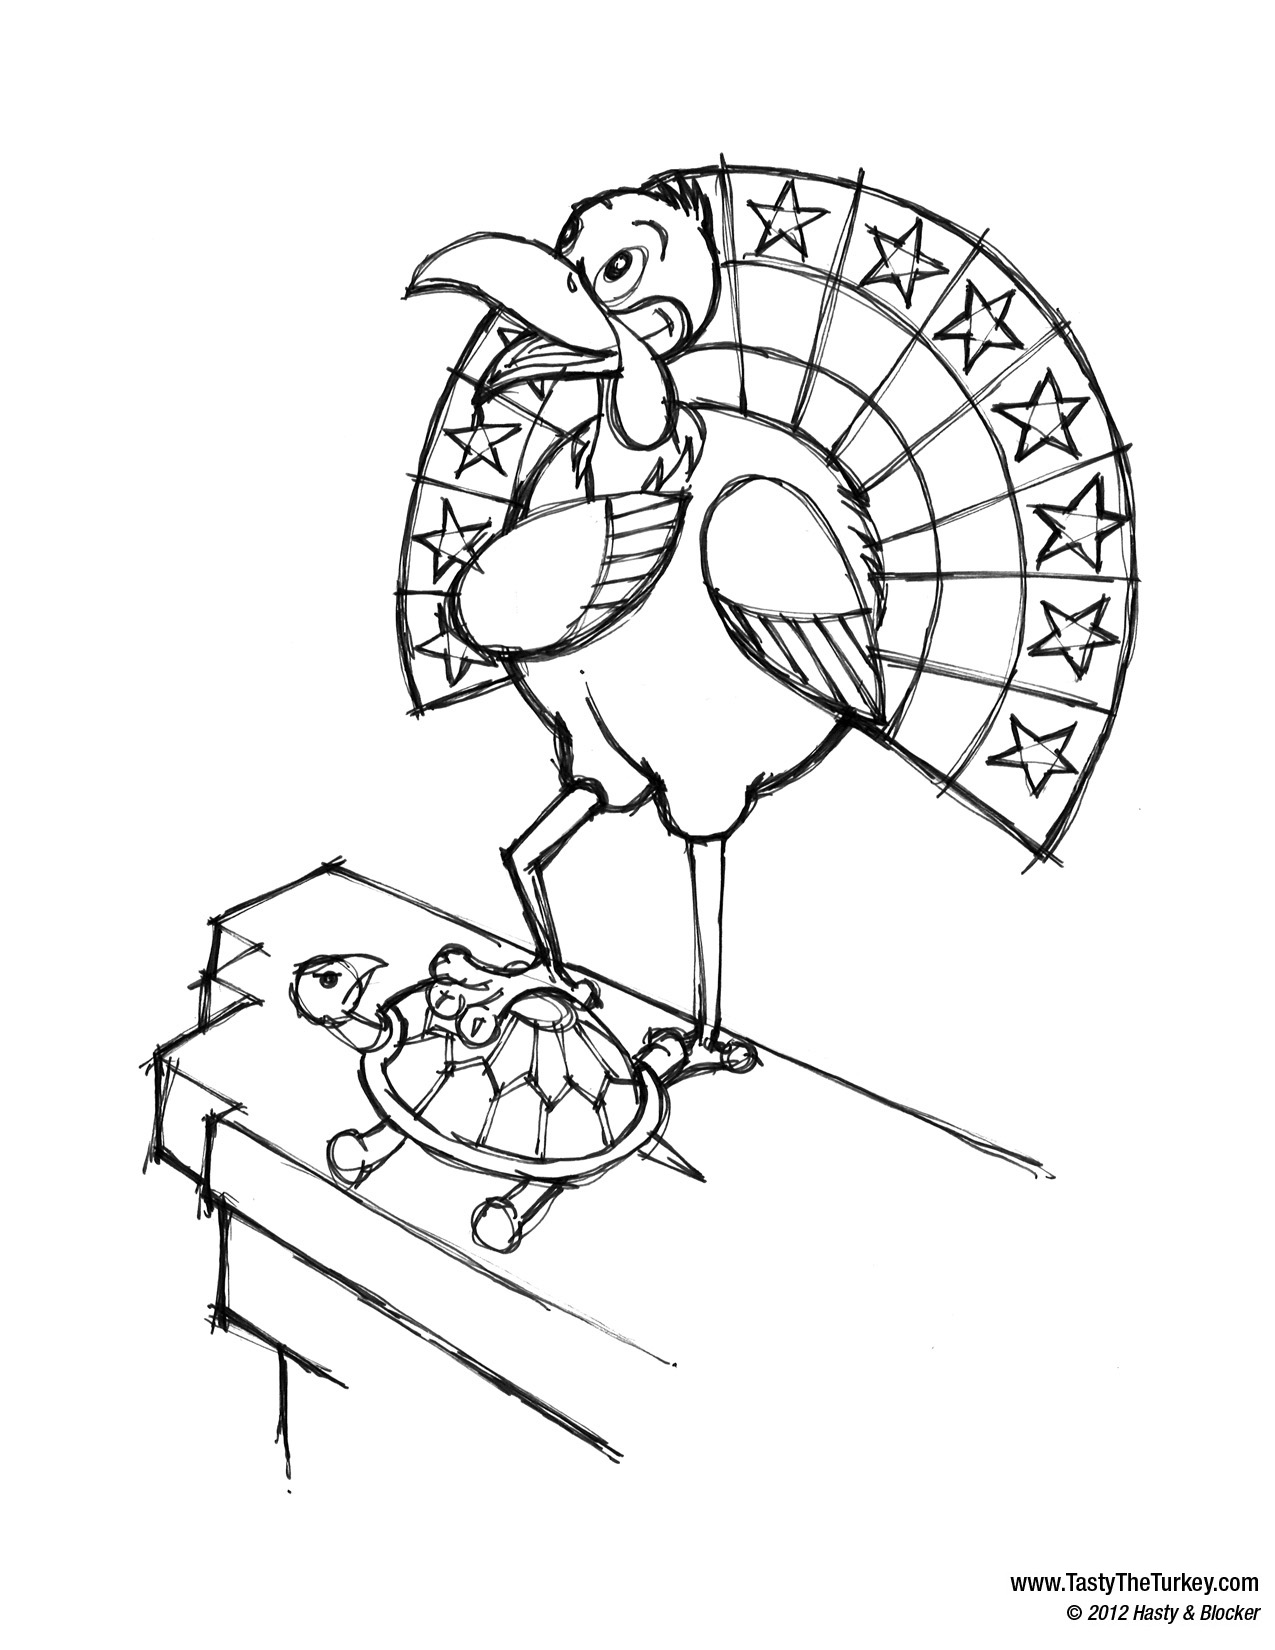 Tasty the Turkey Coloring Book